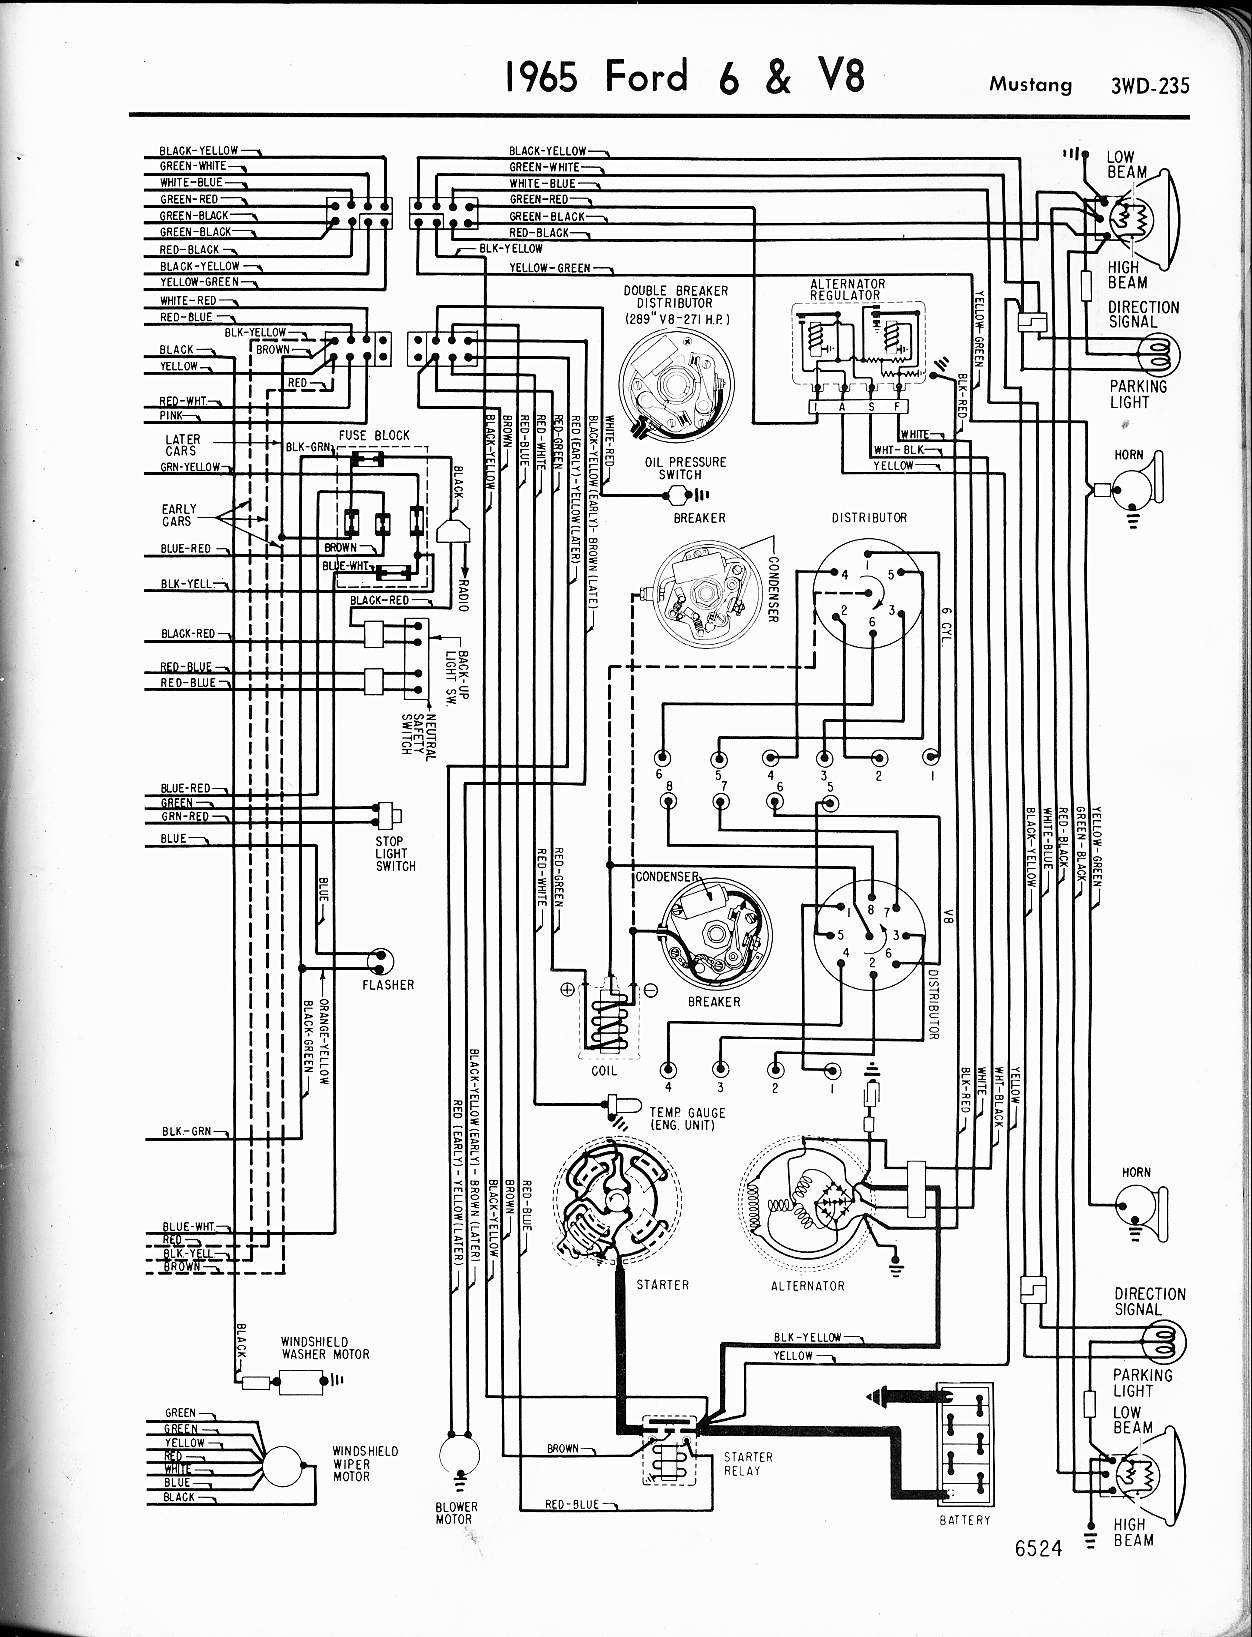 1971 mustang ignition wiring diagram wiring diagram for a 1970 ford mustang the wiring diagram ford diagrams wiring diagram